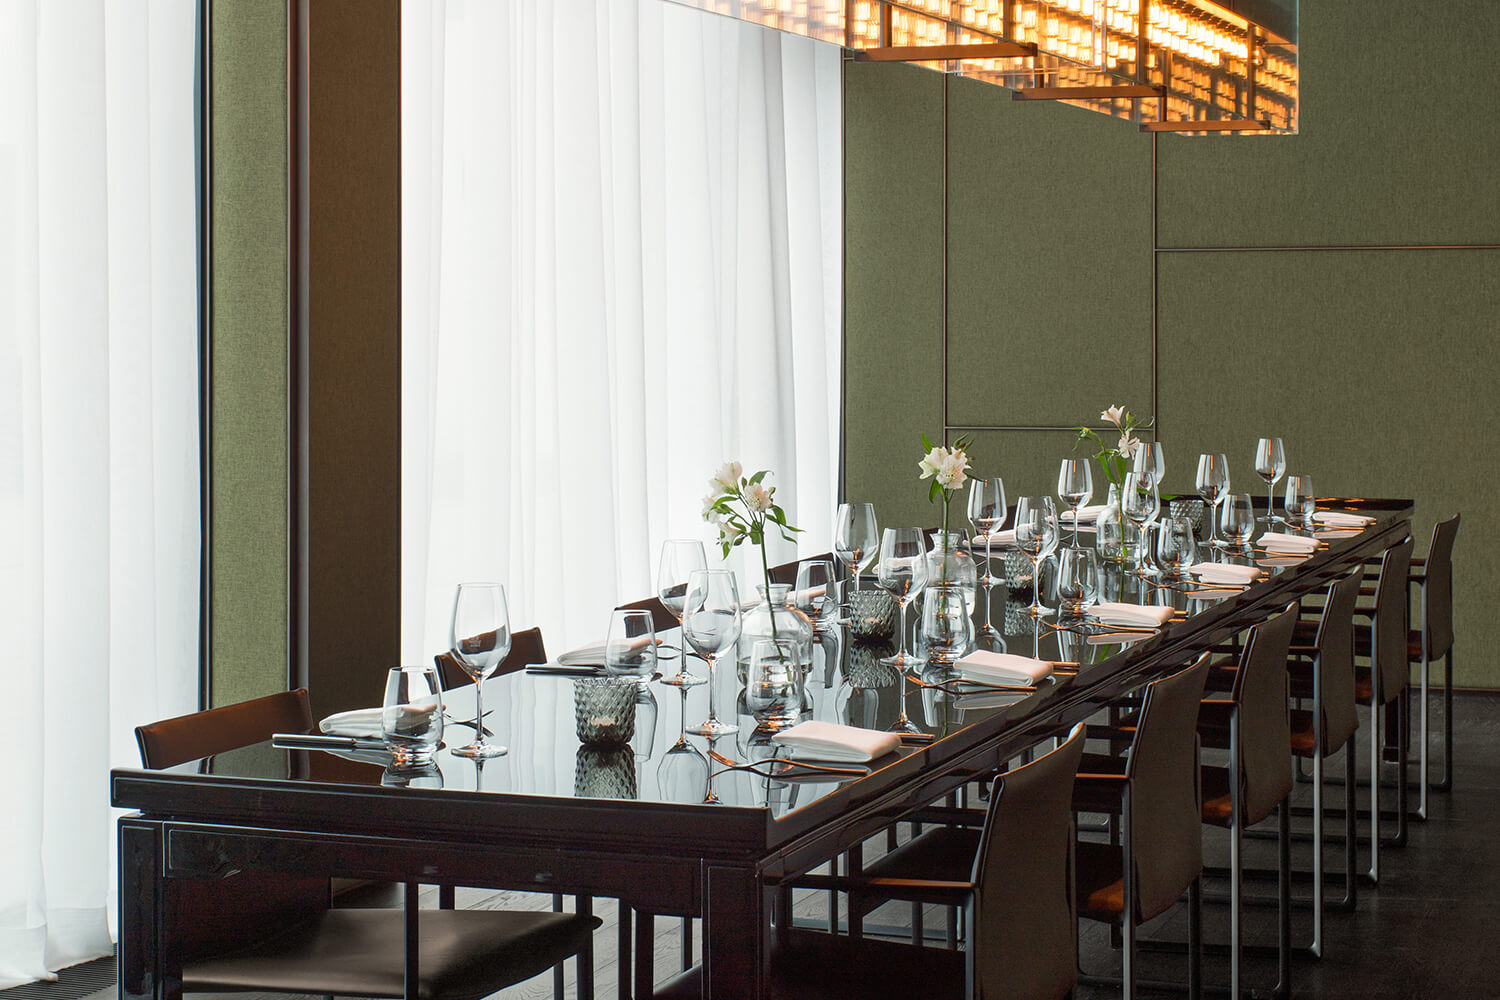 Roomers Baden-Baden Meeting Event Private Dining